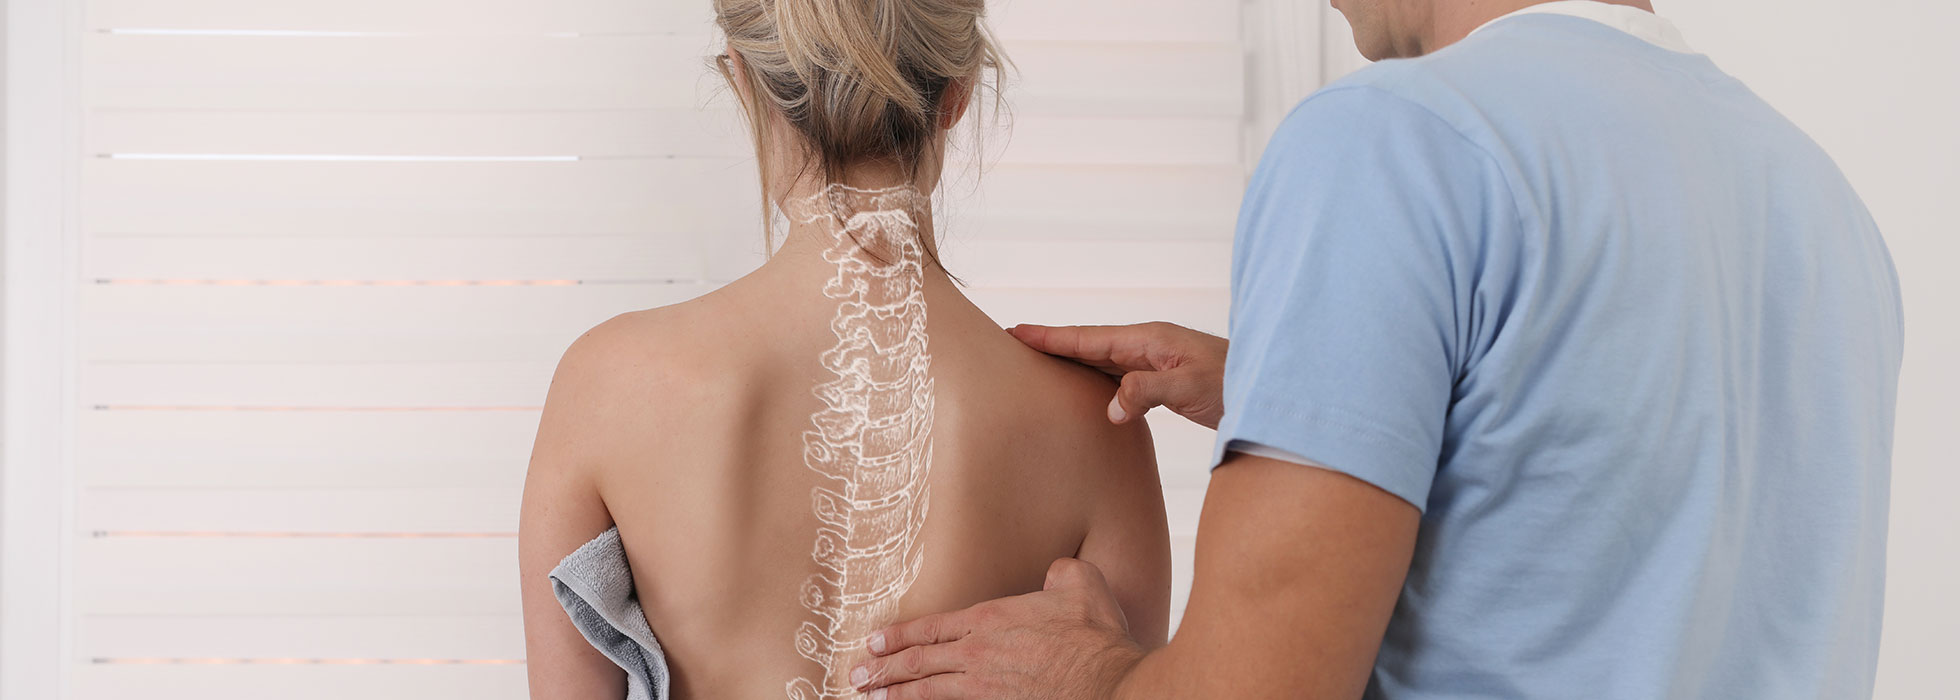 Comprehensive Initial Examination at Platinum Chiropractic in Ames IA, Comprehensive Initial Examination at Platinum Chiropractic near Nevada IA, Comprehensive Initial Examination at Platinum Chiropractic near Boone IA, Comprehensive Initial Examination at Platinum Chiropractic near Huxley IA